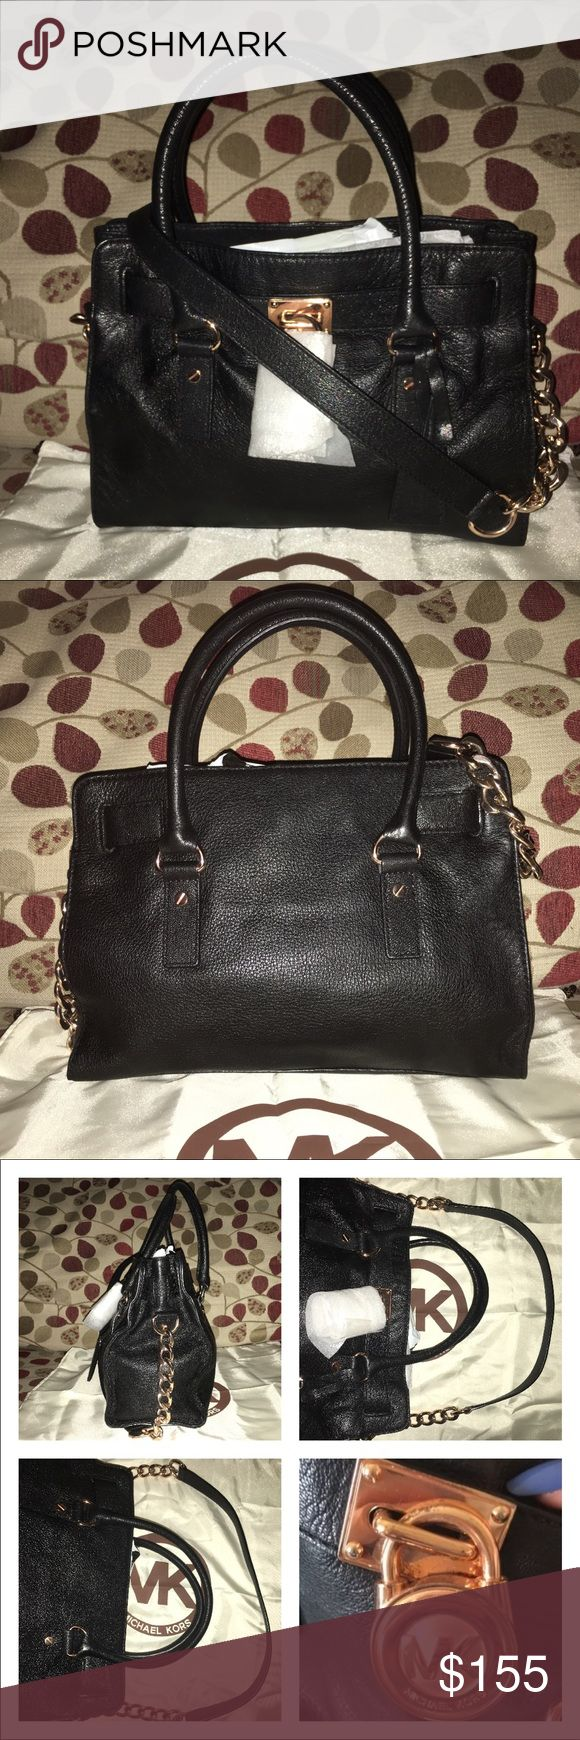 "Michael Kors E/W Hamilton Muchael Kirs E/W Black Pebbled Leather Hamilton w/ 🌹Rose Gold🌹 hardware! It has Logo lining, 1 zip, multiple zip pockets, key fob, strap is chain and leather for the option of wearing it in your shoulder drop is 18.5""! Bag closes by magnetic snap! Double rolled handle drop is 7"" bag measures 12.5 X 10 X 4 bag is in wonderful condition and clean, only issue is scratching on the plate wear the lick hangs, plz see pics! Dust bag included 🚫no trades price firm🚫 KORS…"